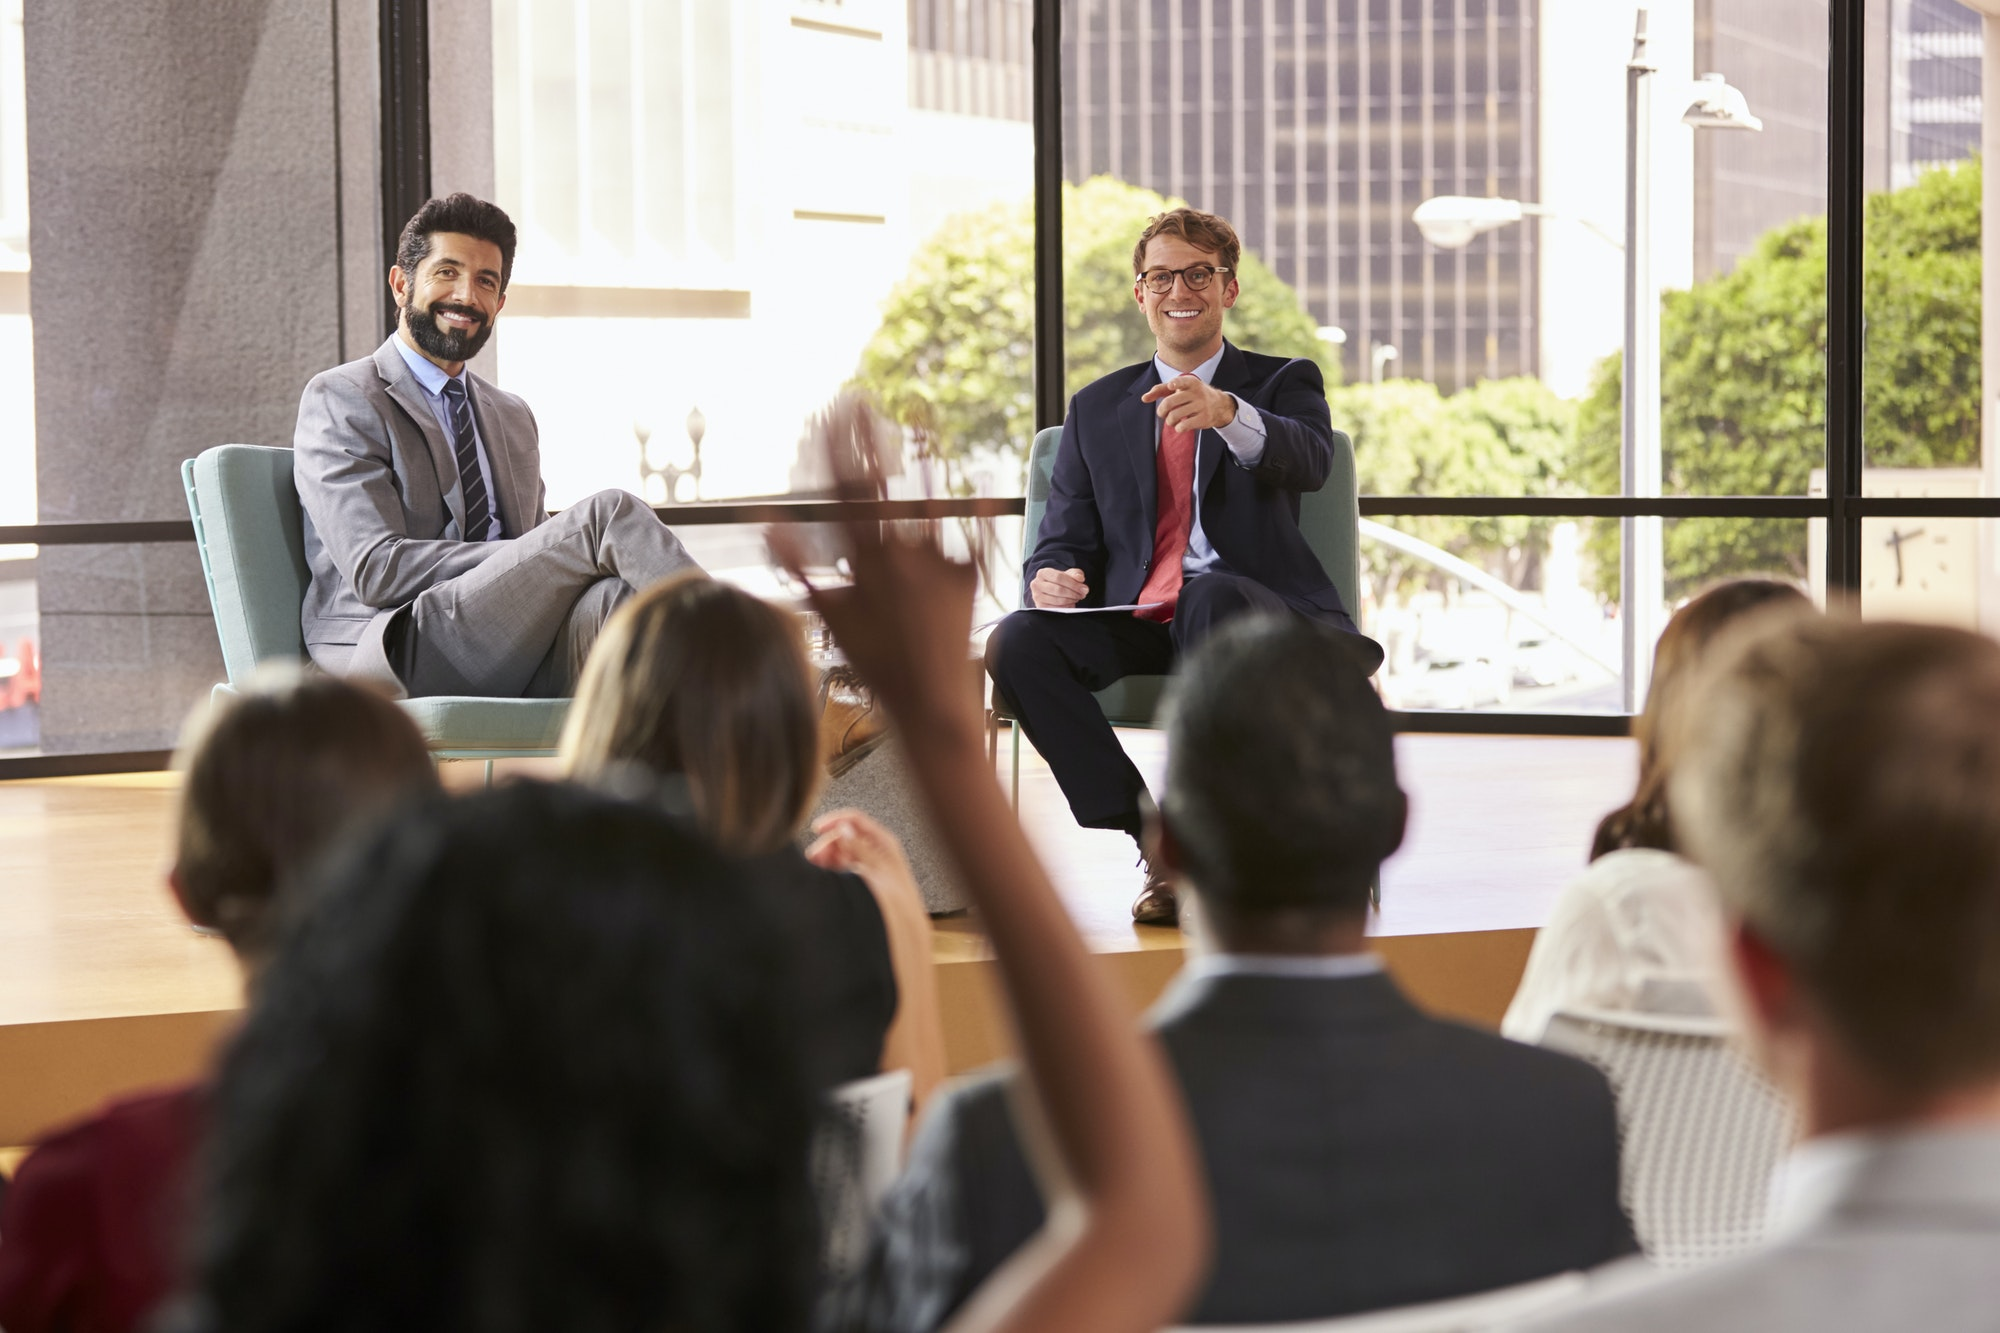 Speakers at a business seminar take questions from audience